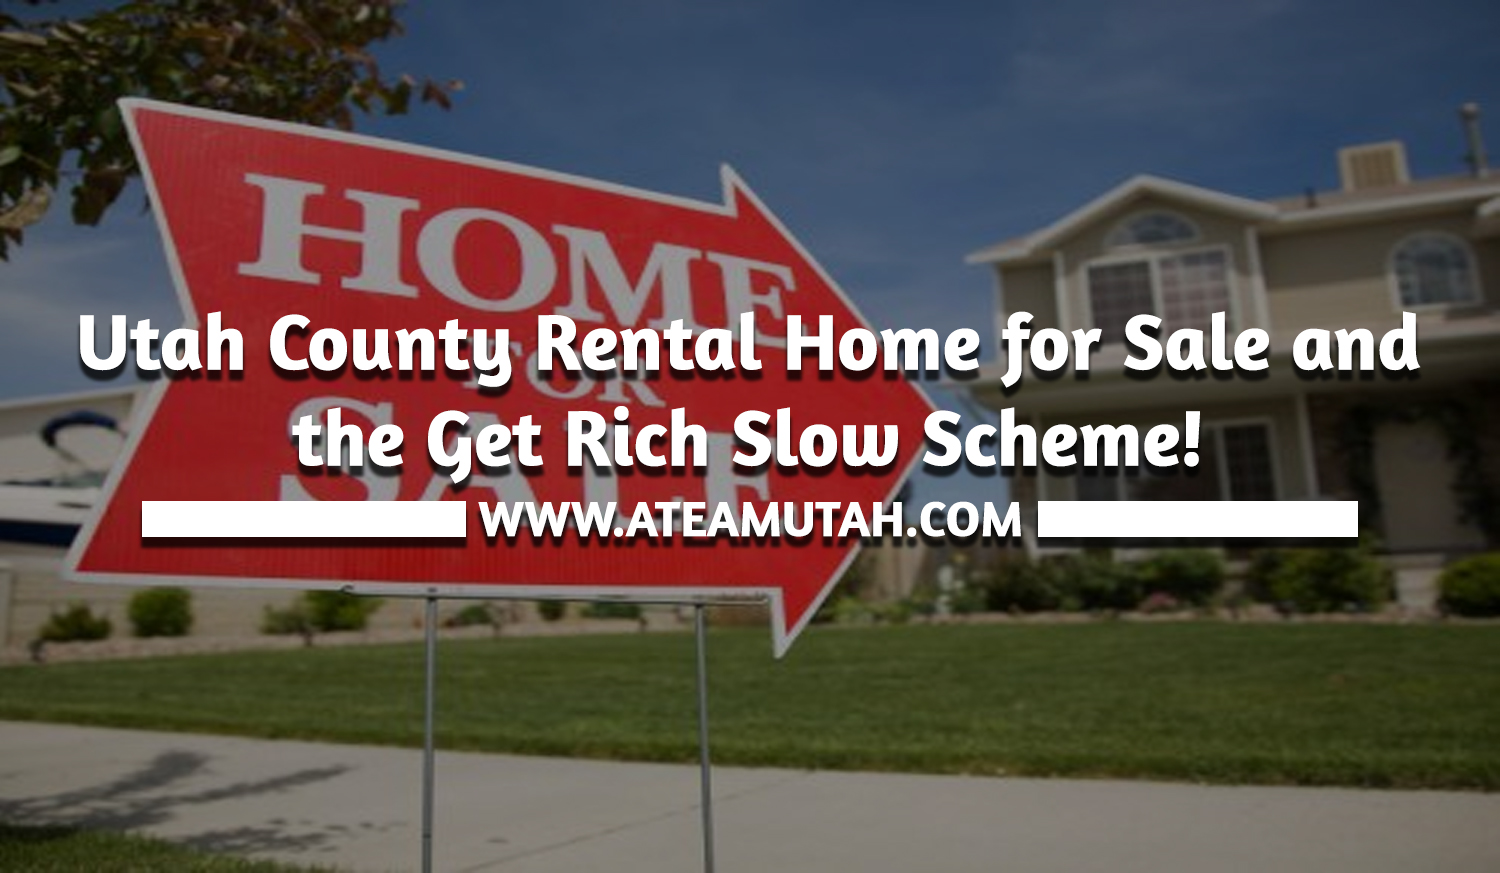 Utah County Rental Home for Sale and the Get Rich Slow Scheme!